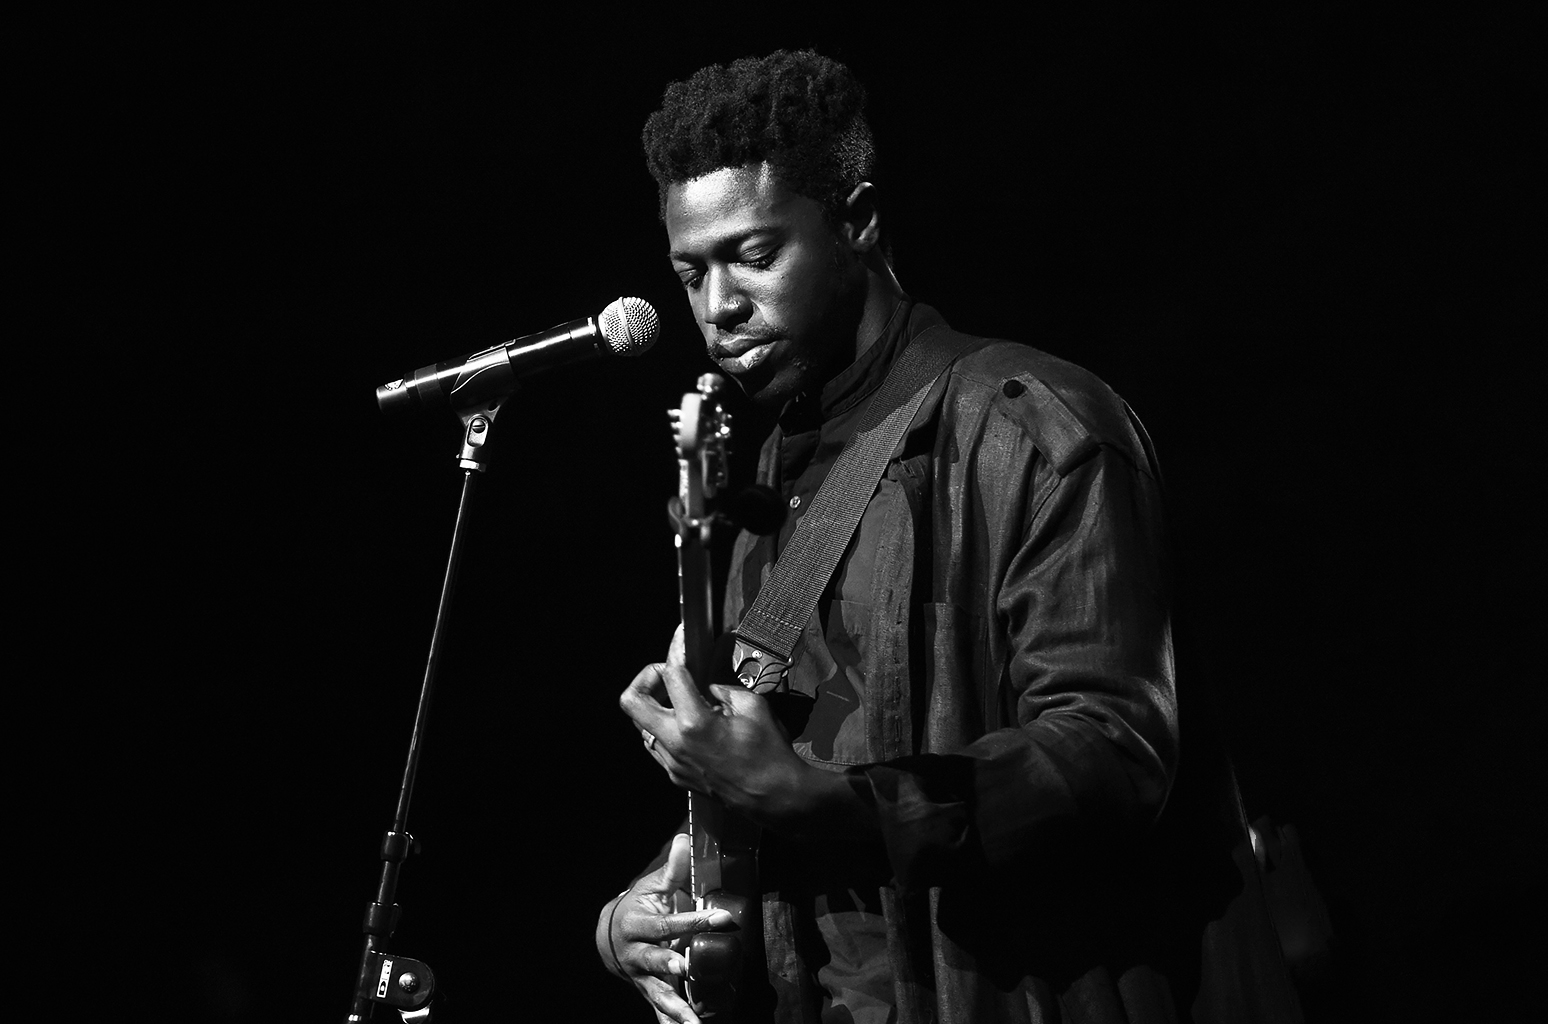 moses-sumney-jan-2017-billboard-1548.jpg